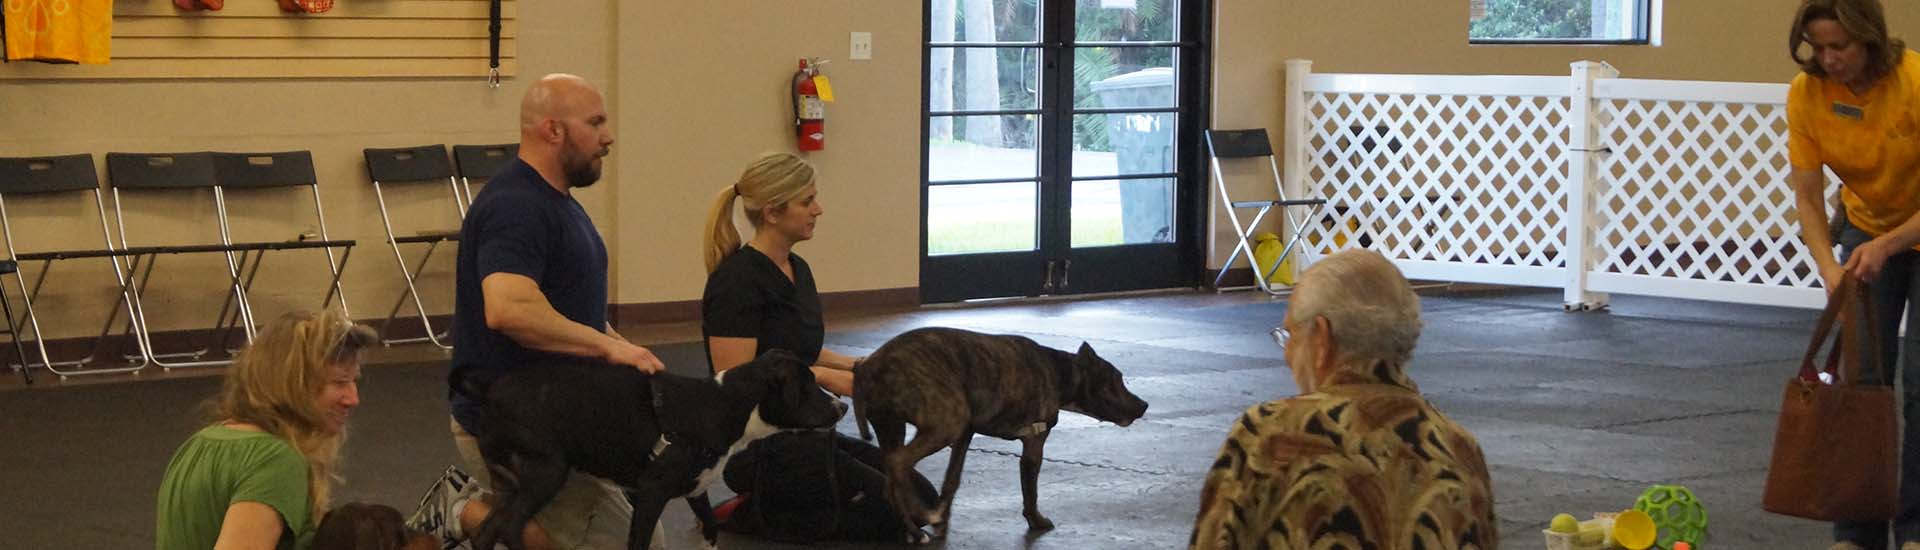 Dog Training at Dogism